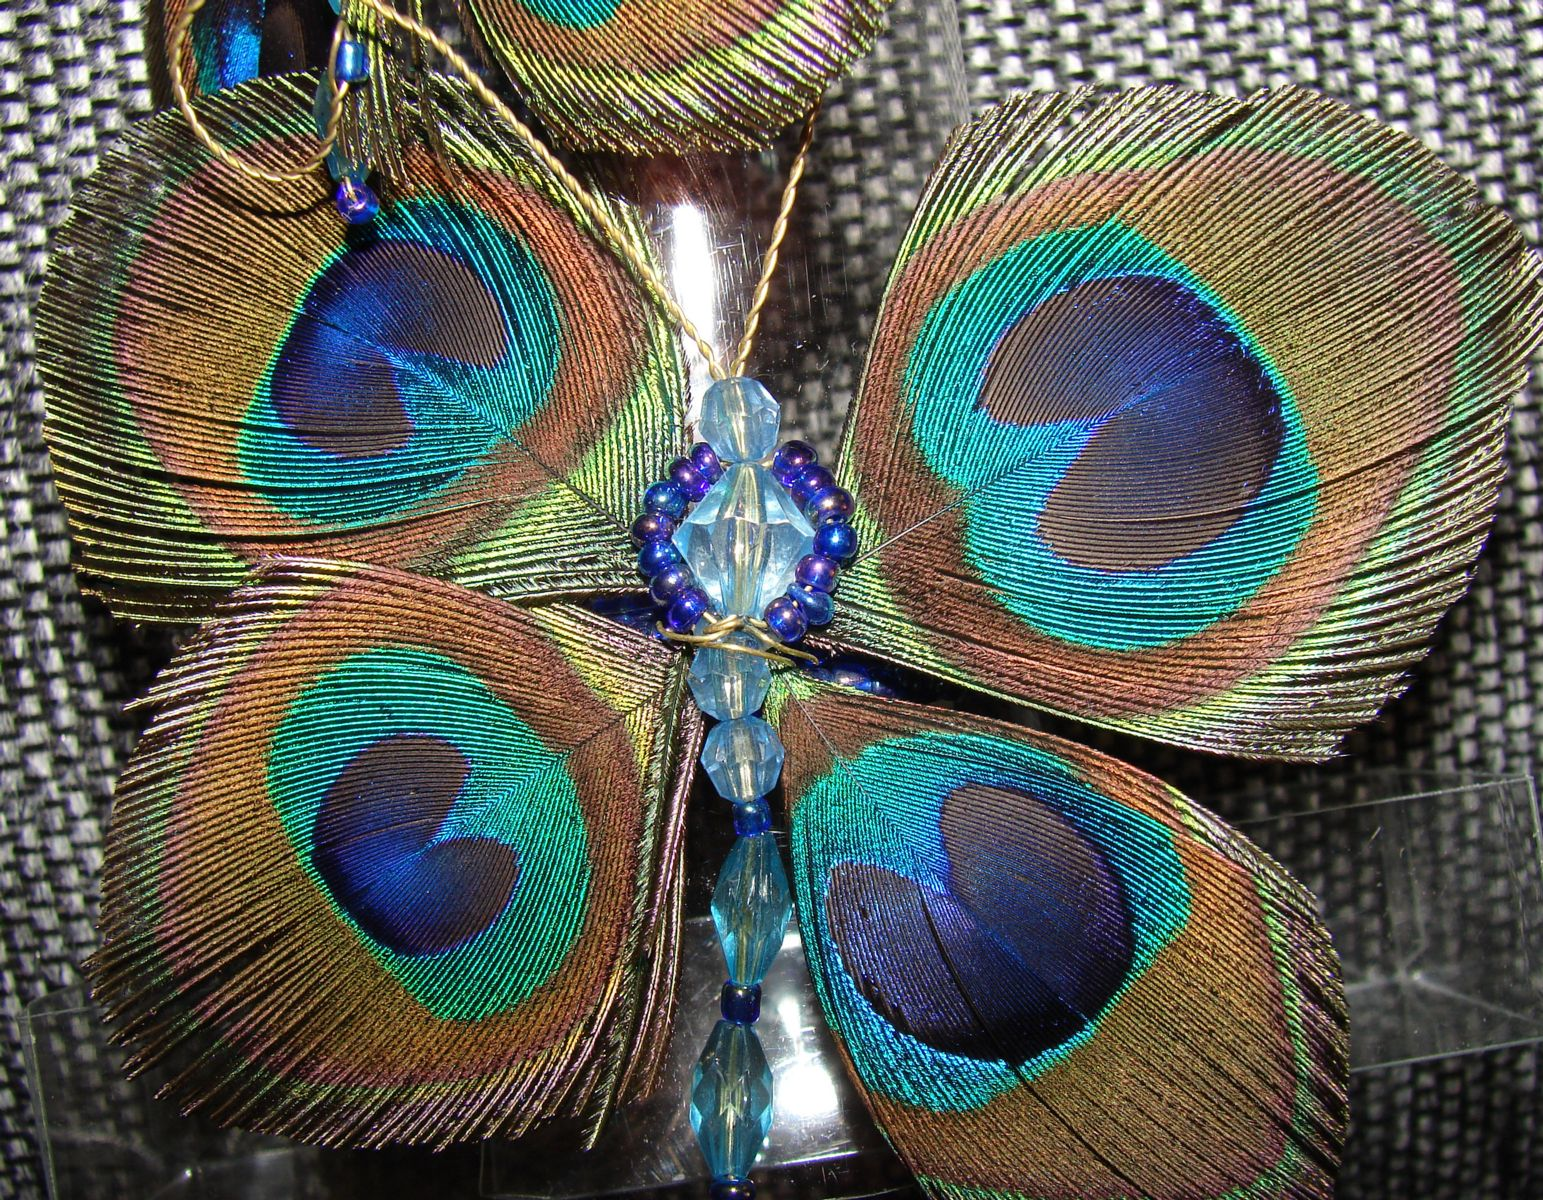 Butterfly Napkin ring made from Peacock feathers